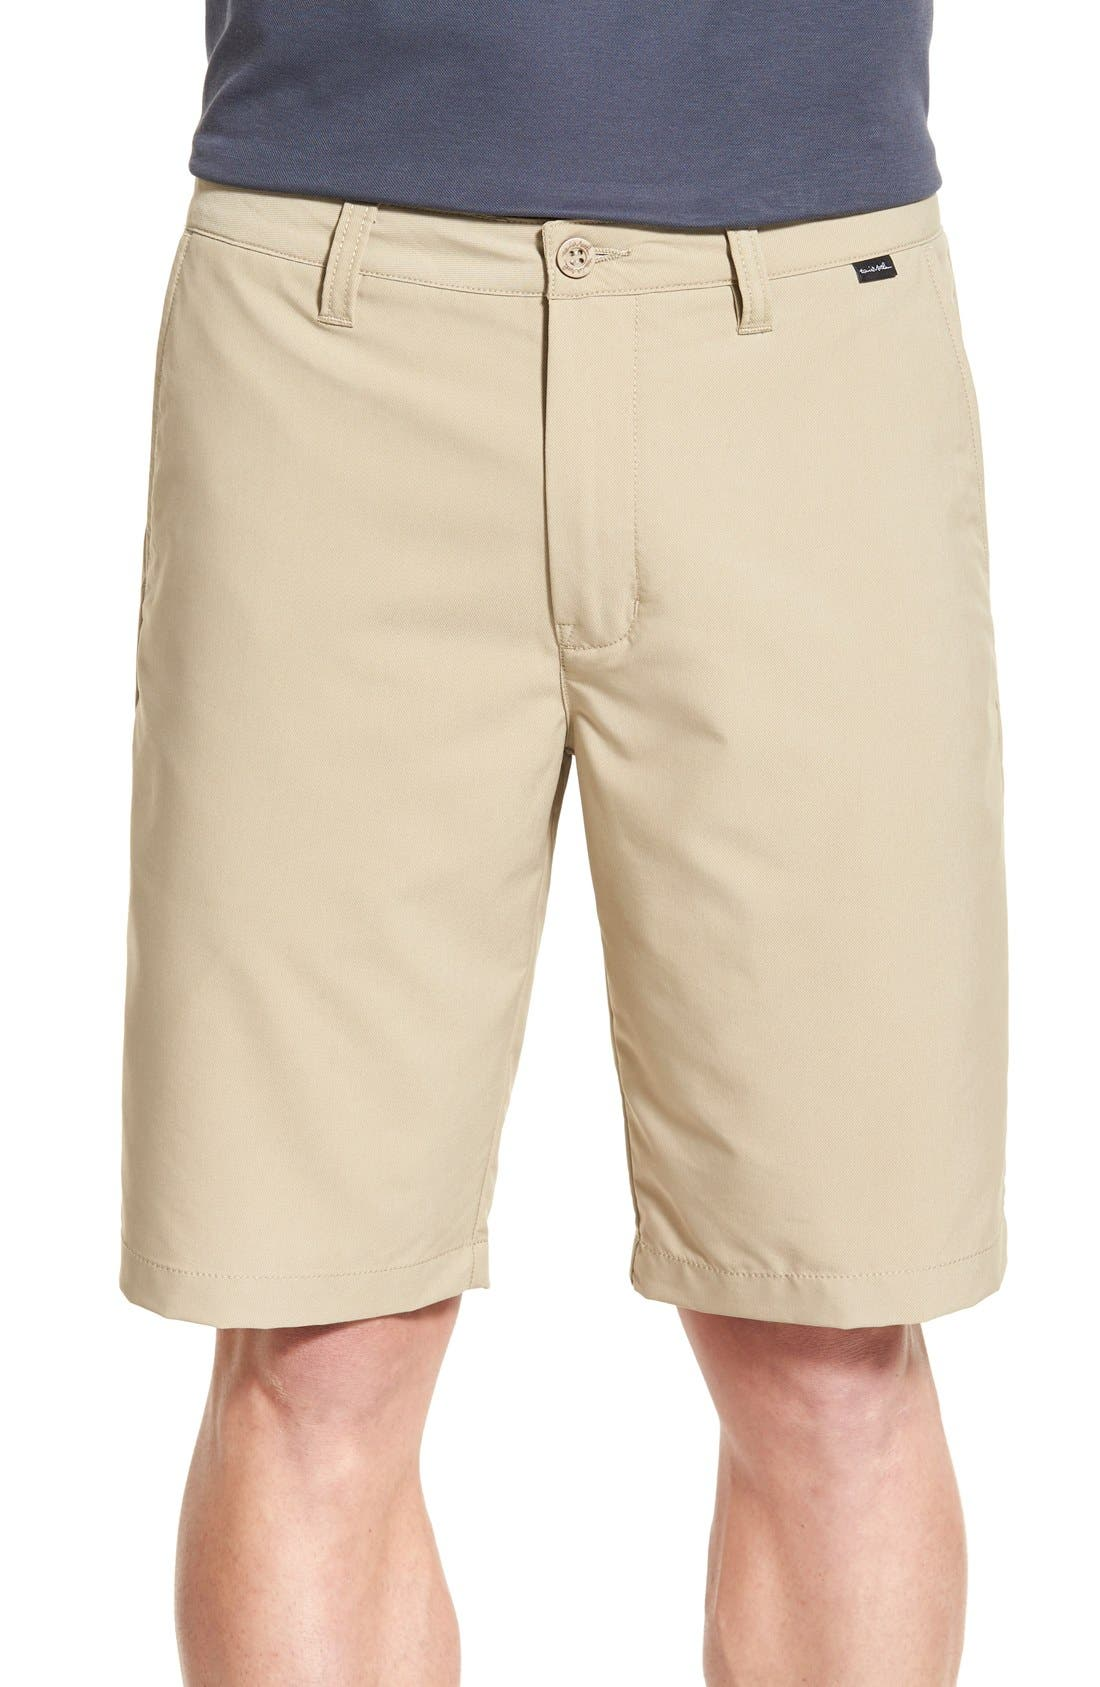 TRAVIS MATHEW Hefner Stretch Golf Shorts